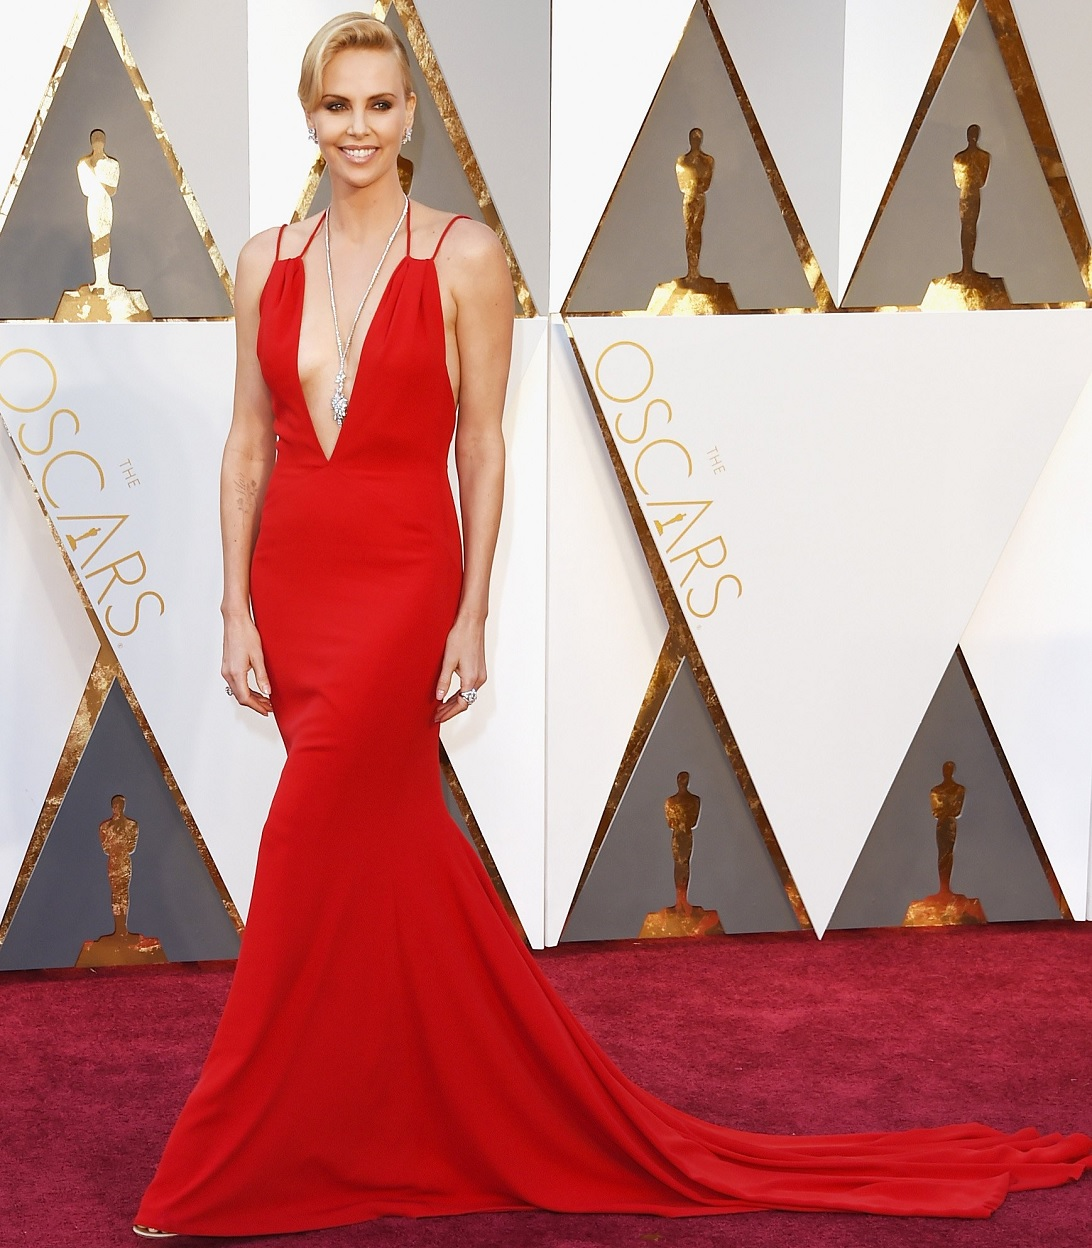 Oscars 2016 Best Dressed Charlize Theron In Red Gown